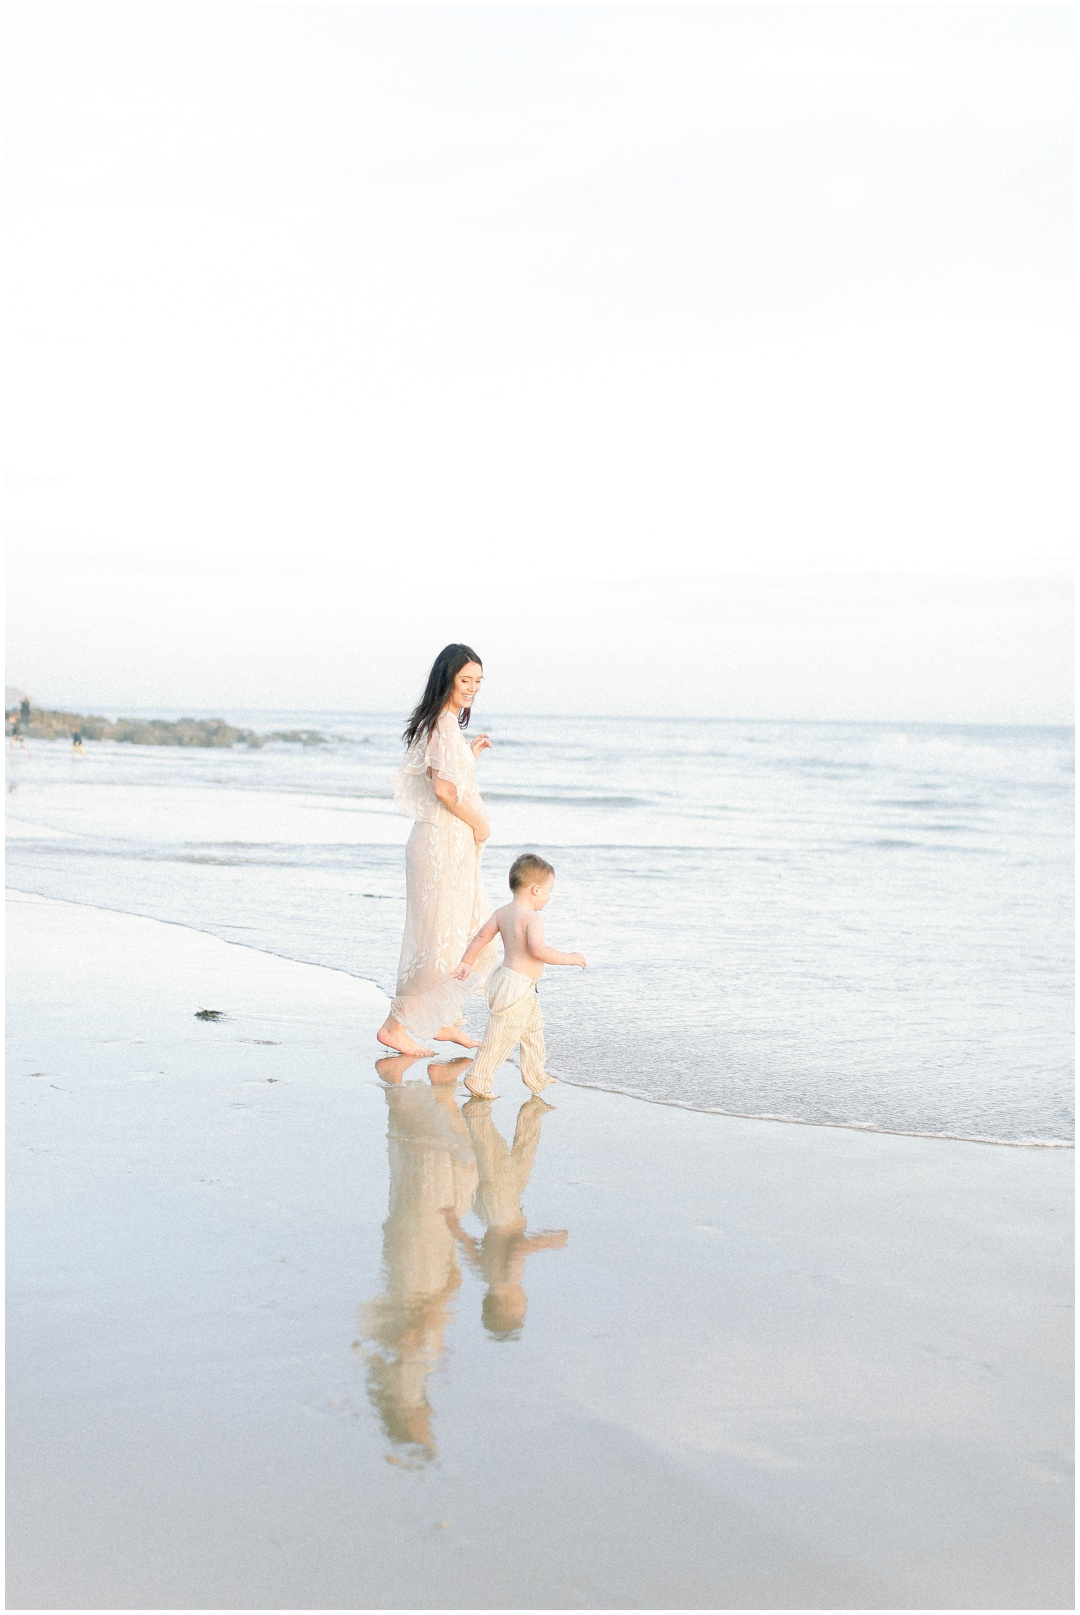 Newport_Beach_Newborn_Light_Airy_Natural_Photographer_Newport_Beach_Photographer_Orange_County_Family_Photographer_Cori_Kleckner_Photography_Huntington_Beach_Photographer_Family_OC_Newborn_Danielle_Lawley_Parker_Maternity_Family_Jordan_Lawley_3343.jpg